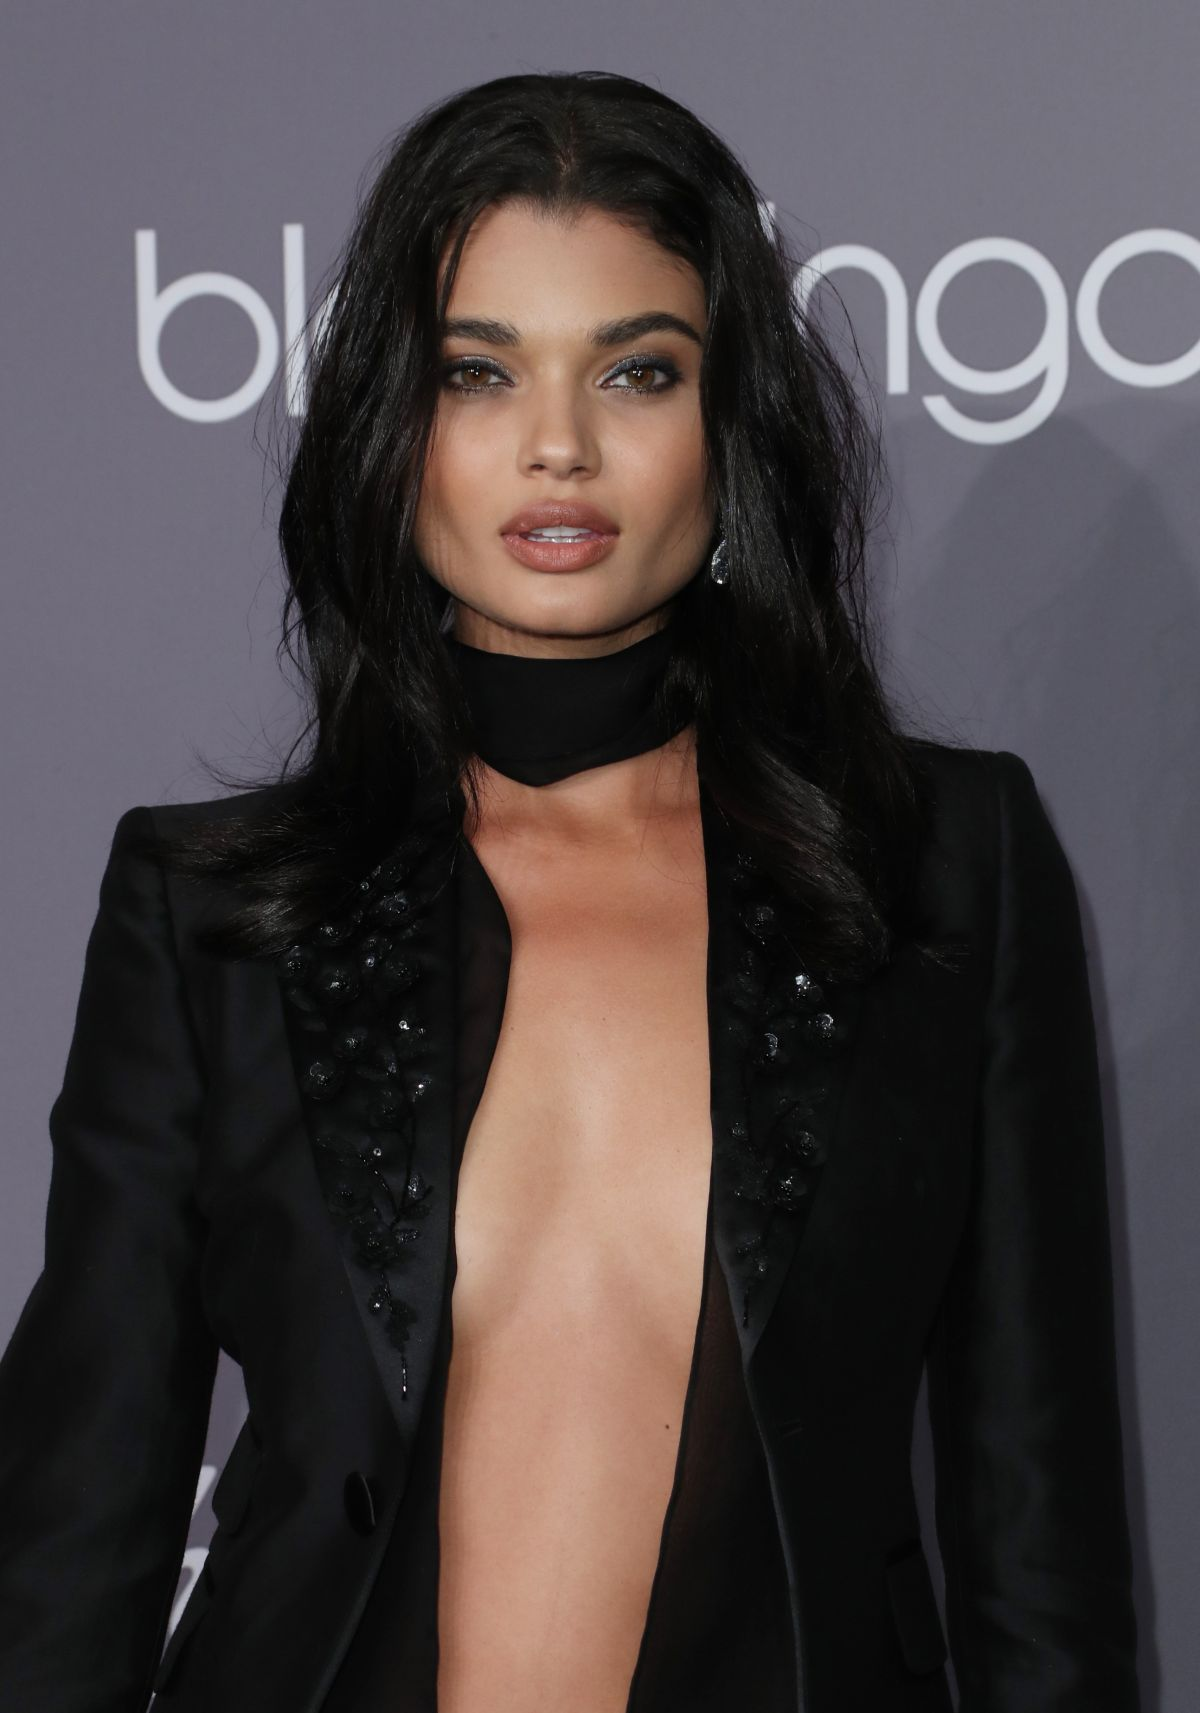 daniela-braga-at-amfar-gala-2018-in-new-york-02-07-2018-1.jpg